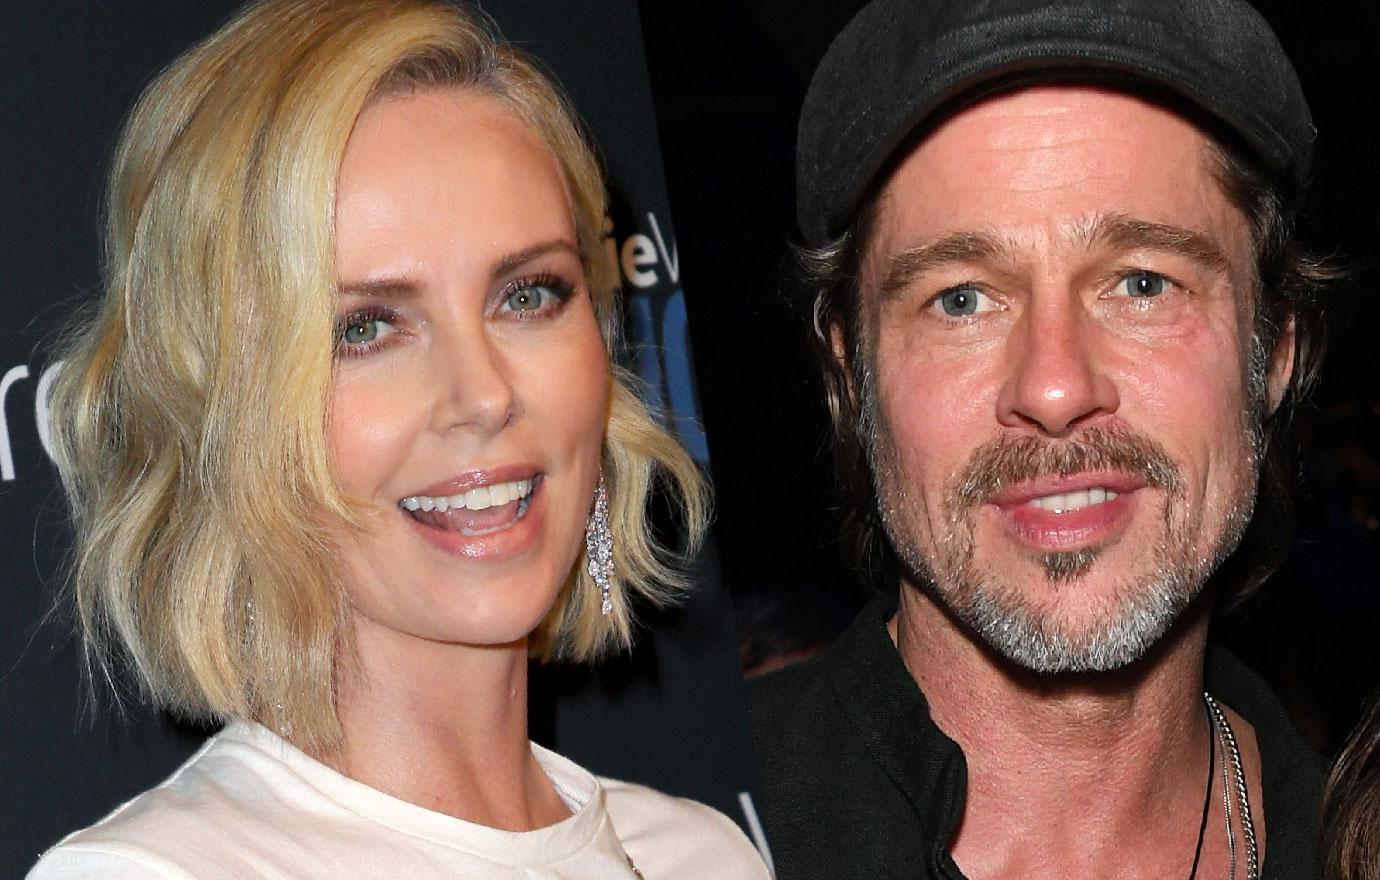 //brad pitt charlize theron friends with benefits ex bodyguard says PP